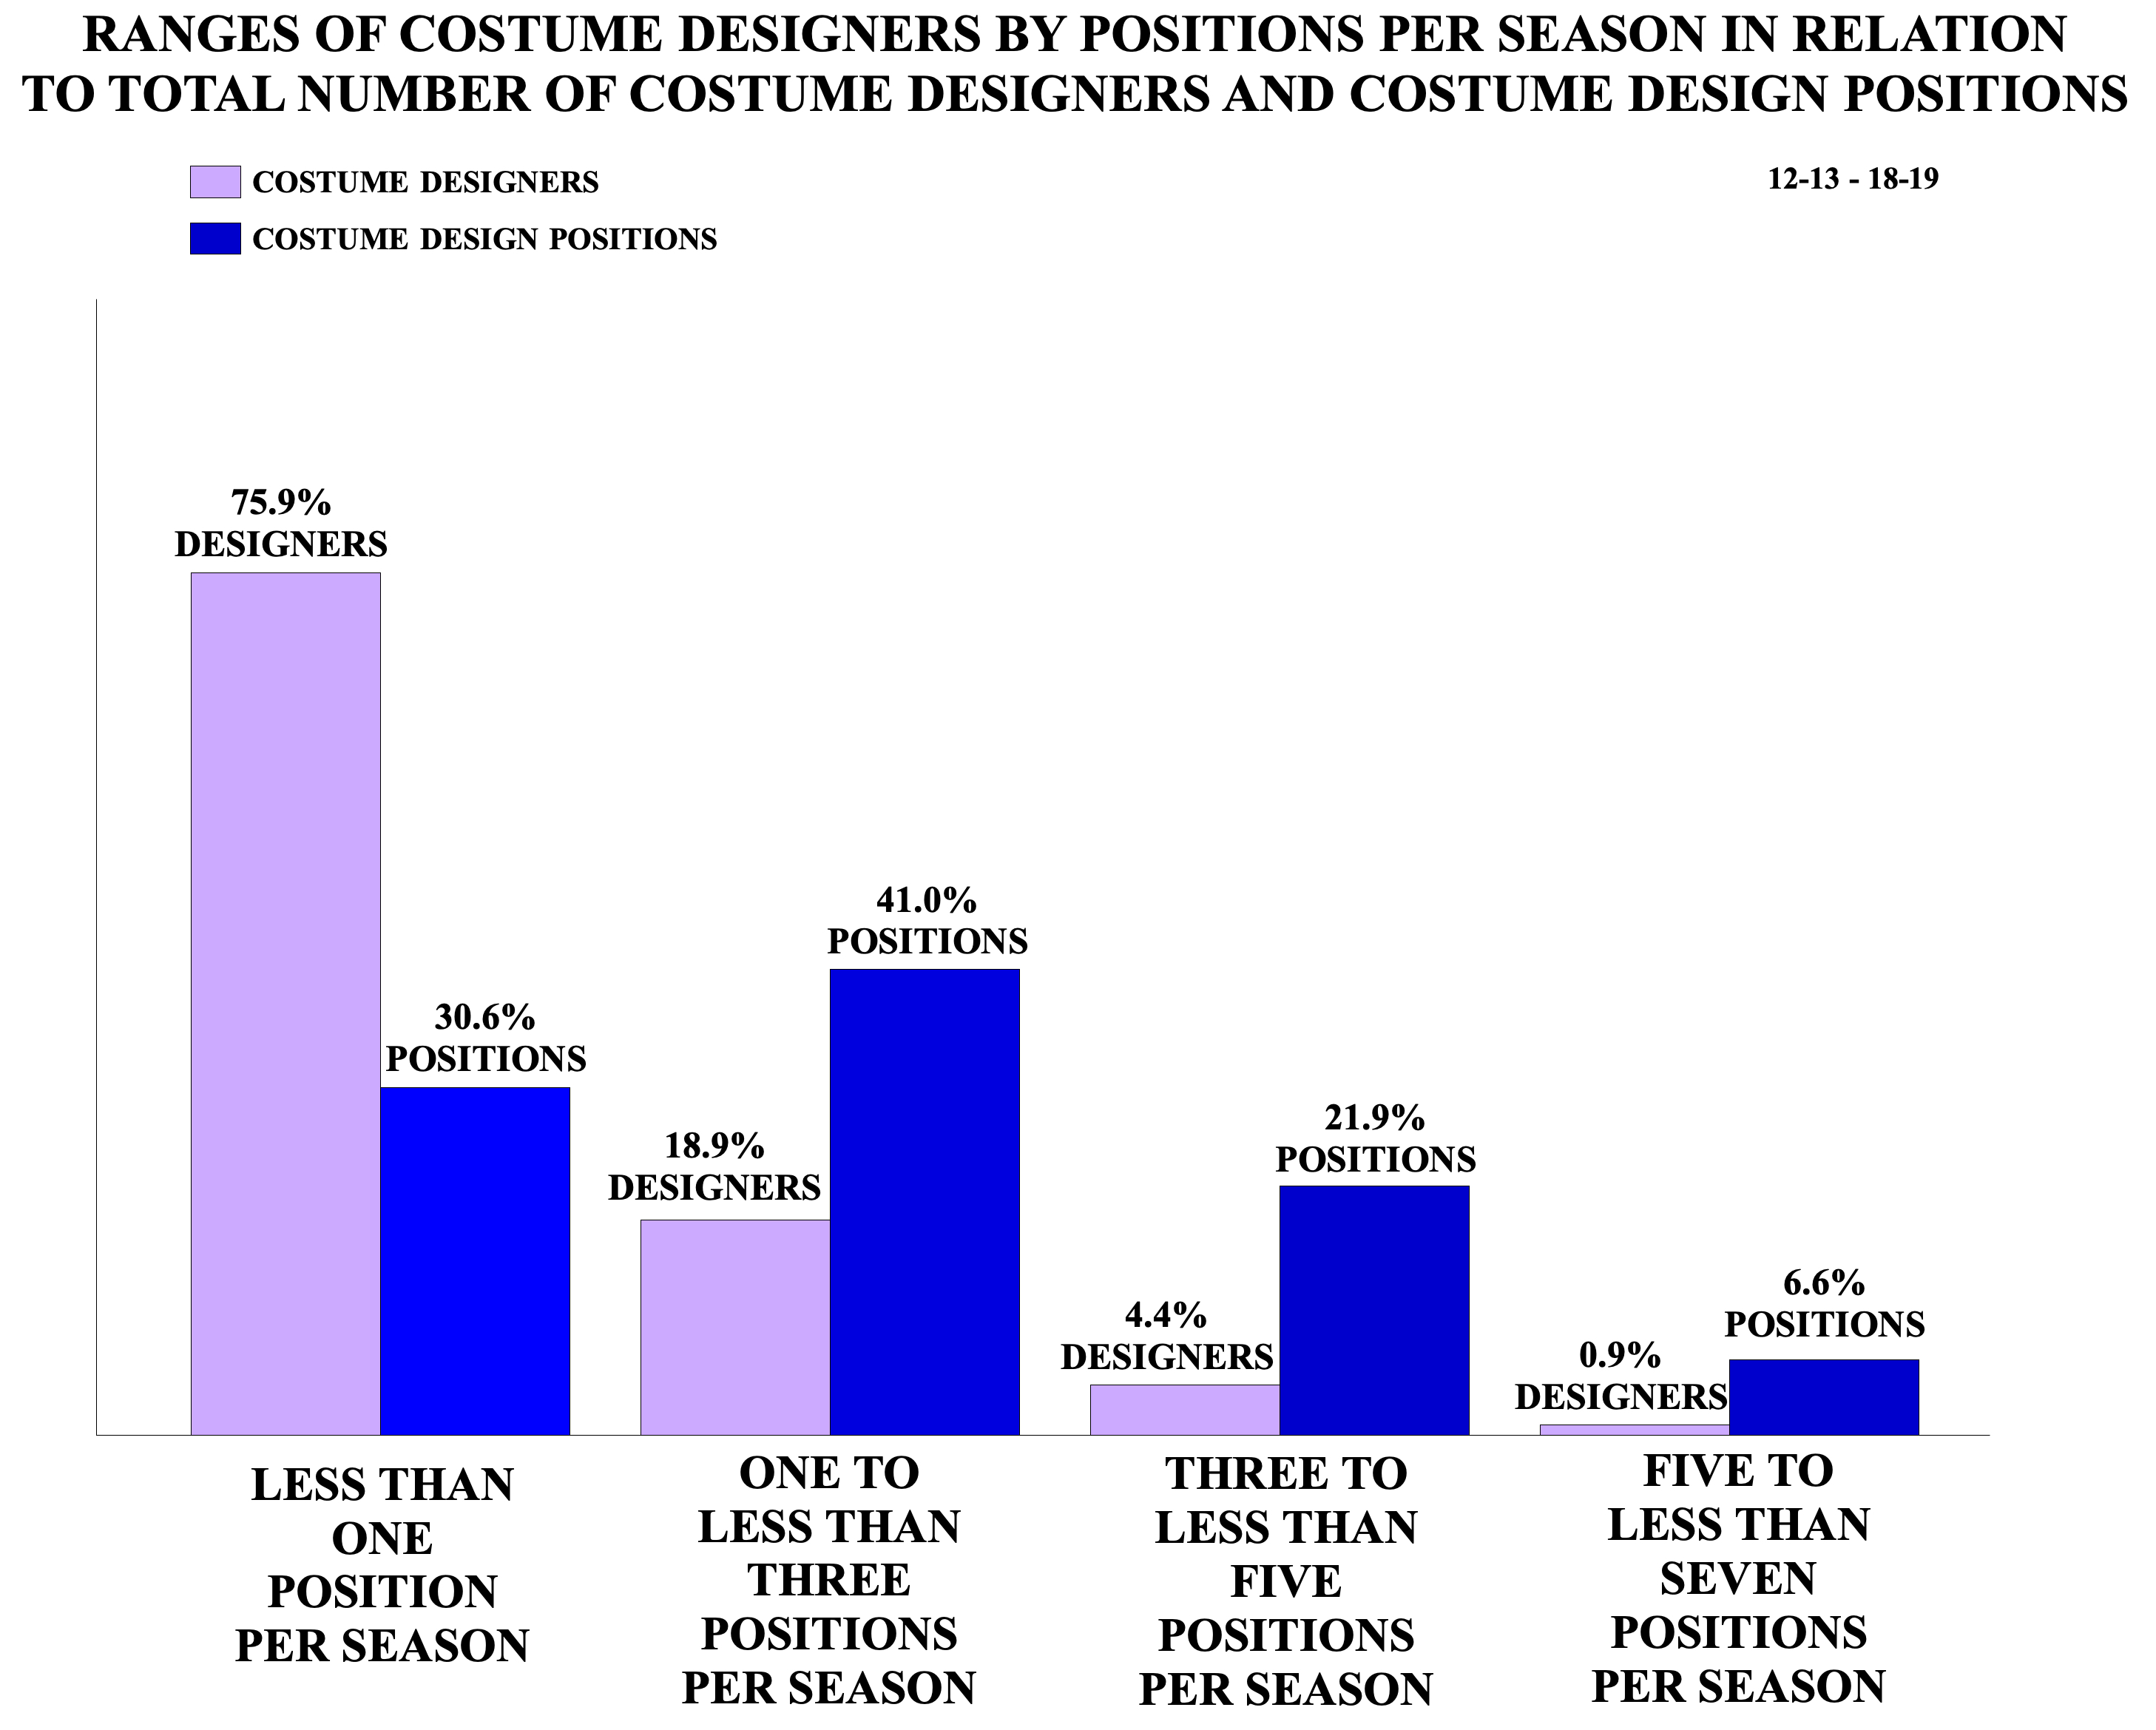 Ranges of Costume Designers by Positions Per Season in Relation to Total Number of Costume Designers and Costume Design Positions